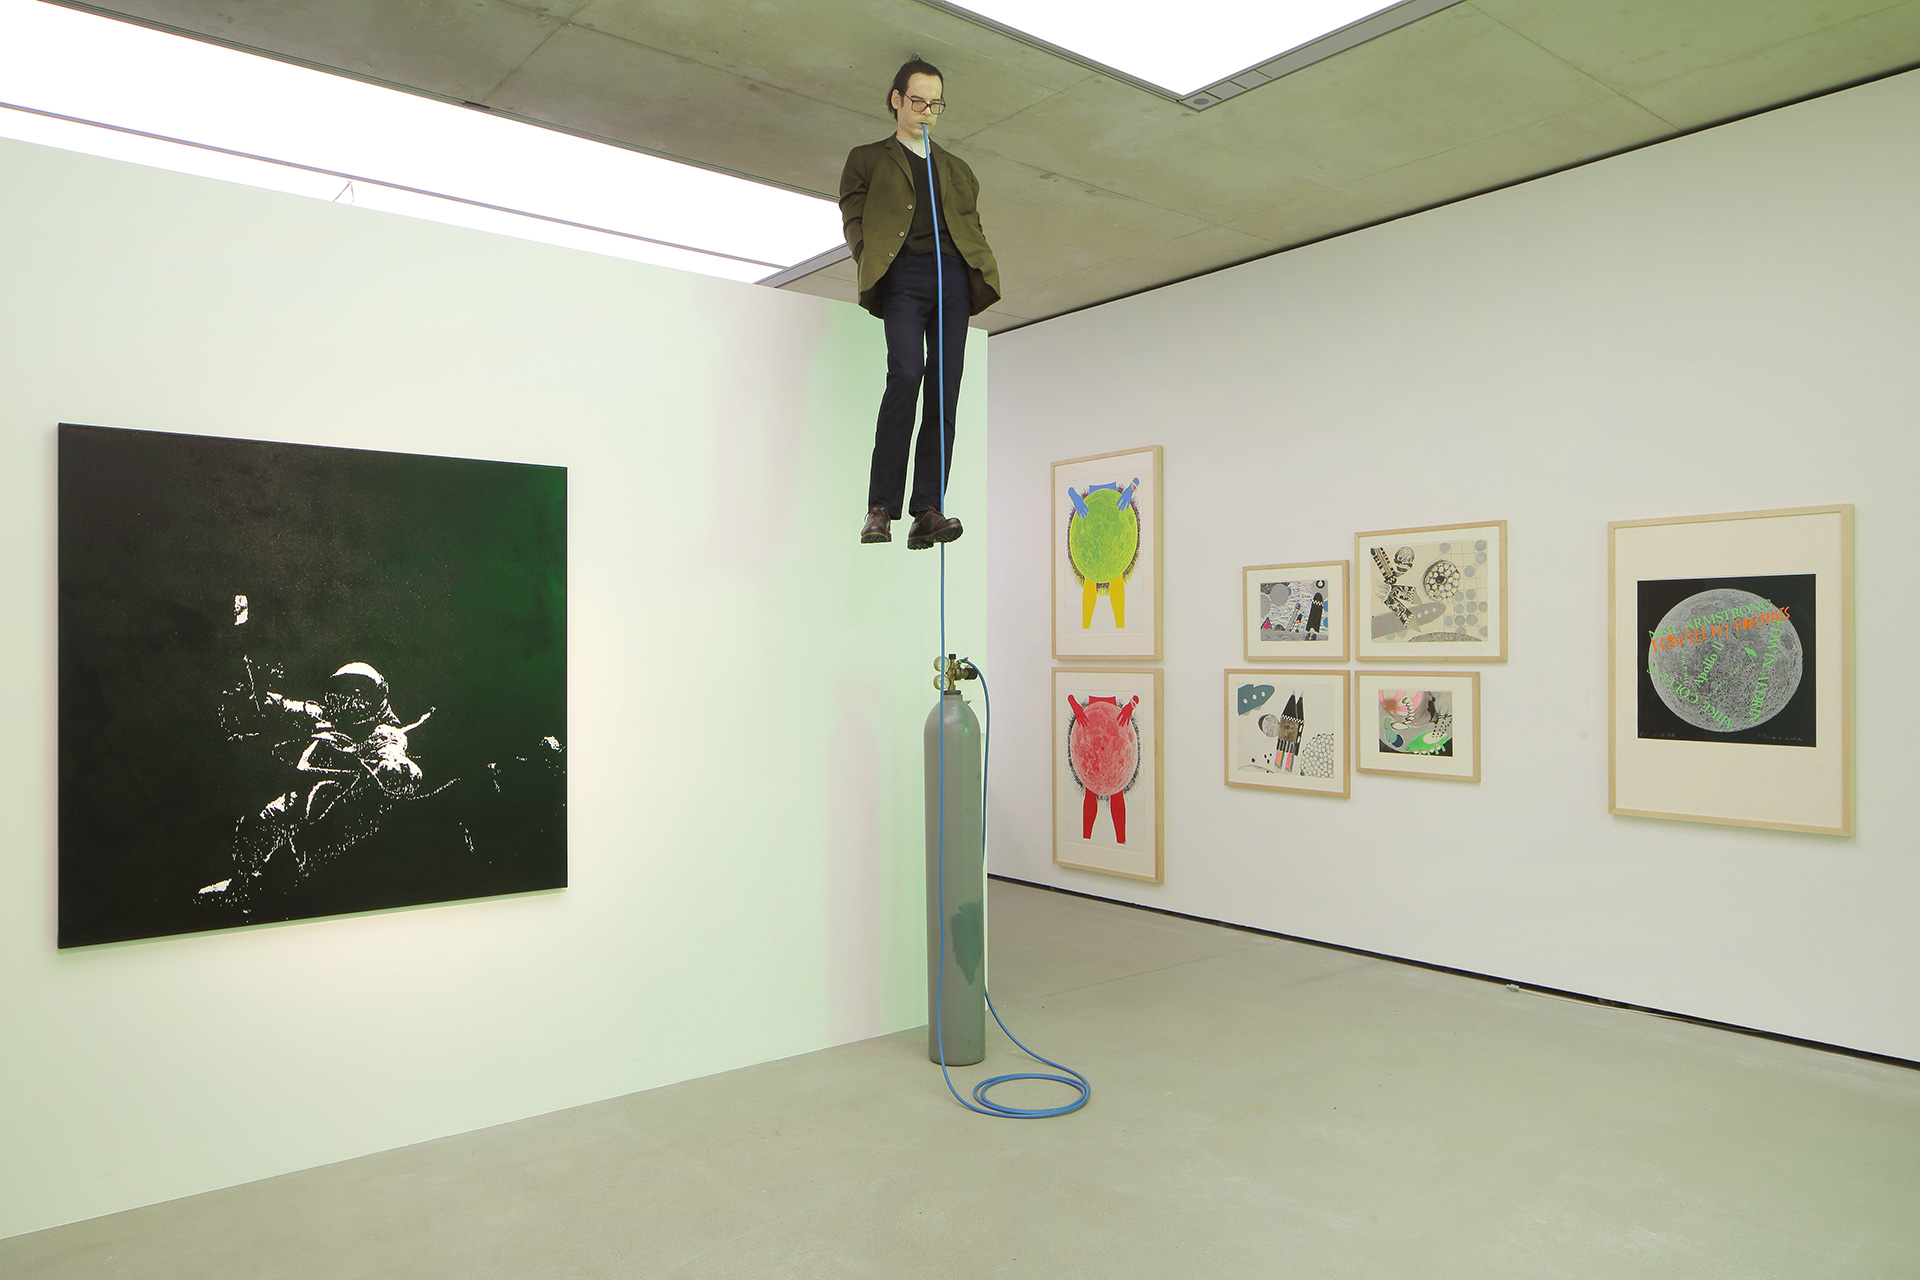 Fly Me to the Moon. The Lunar Landing, 50 Years Later</em>, exhibition view, © Museum der Moderne Salzburg | Museum der Moderne Salzburg | STIR